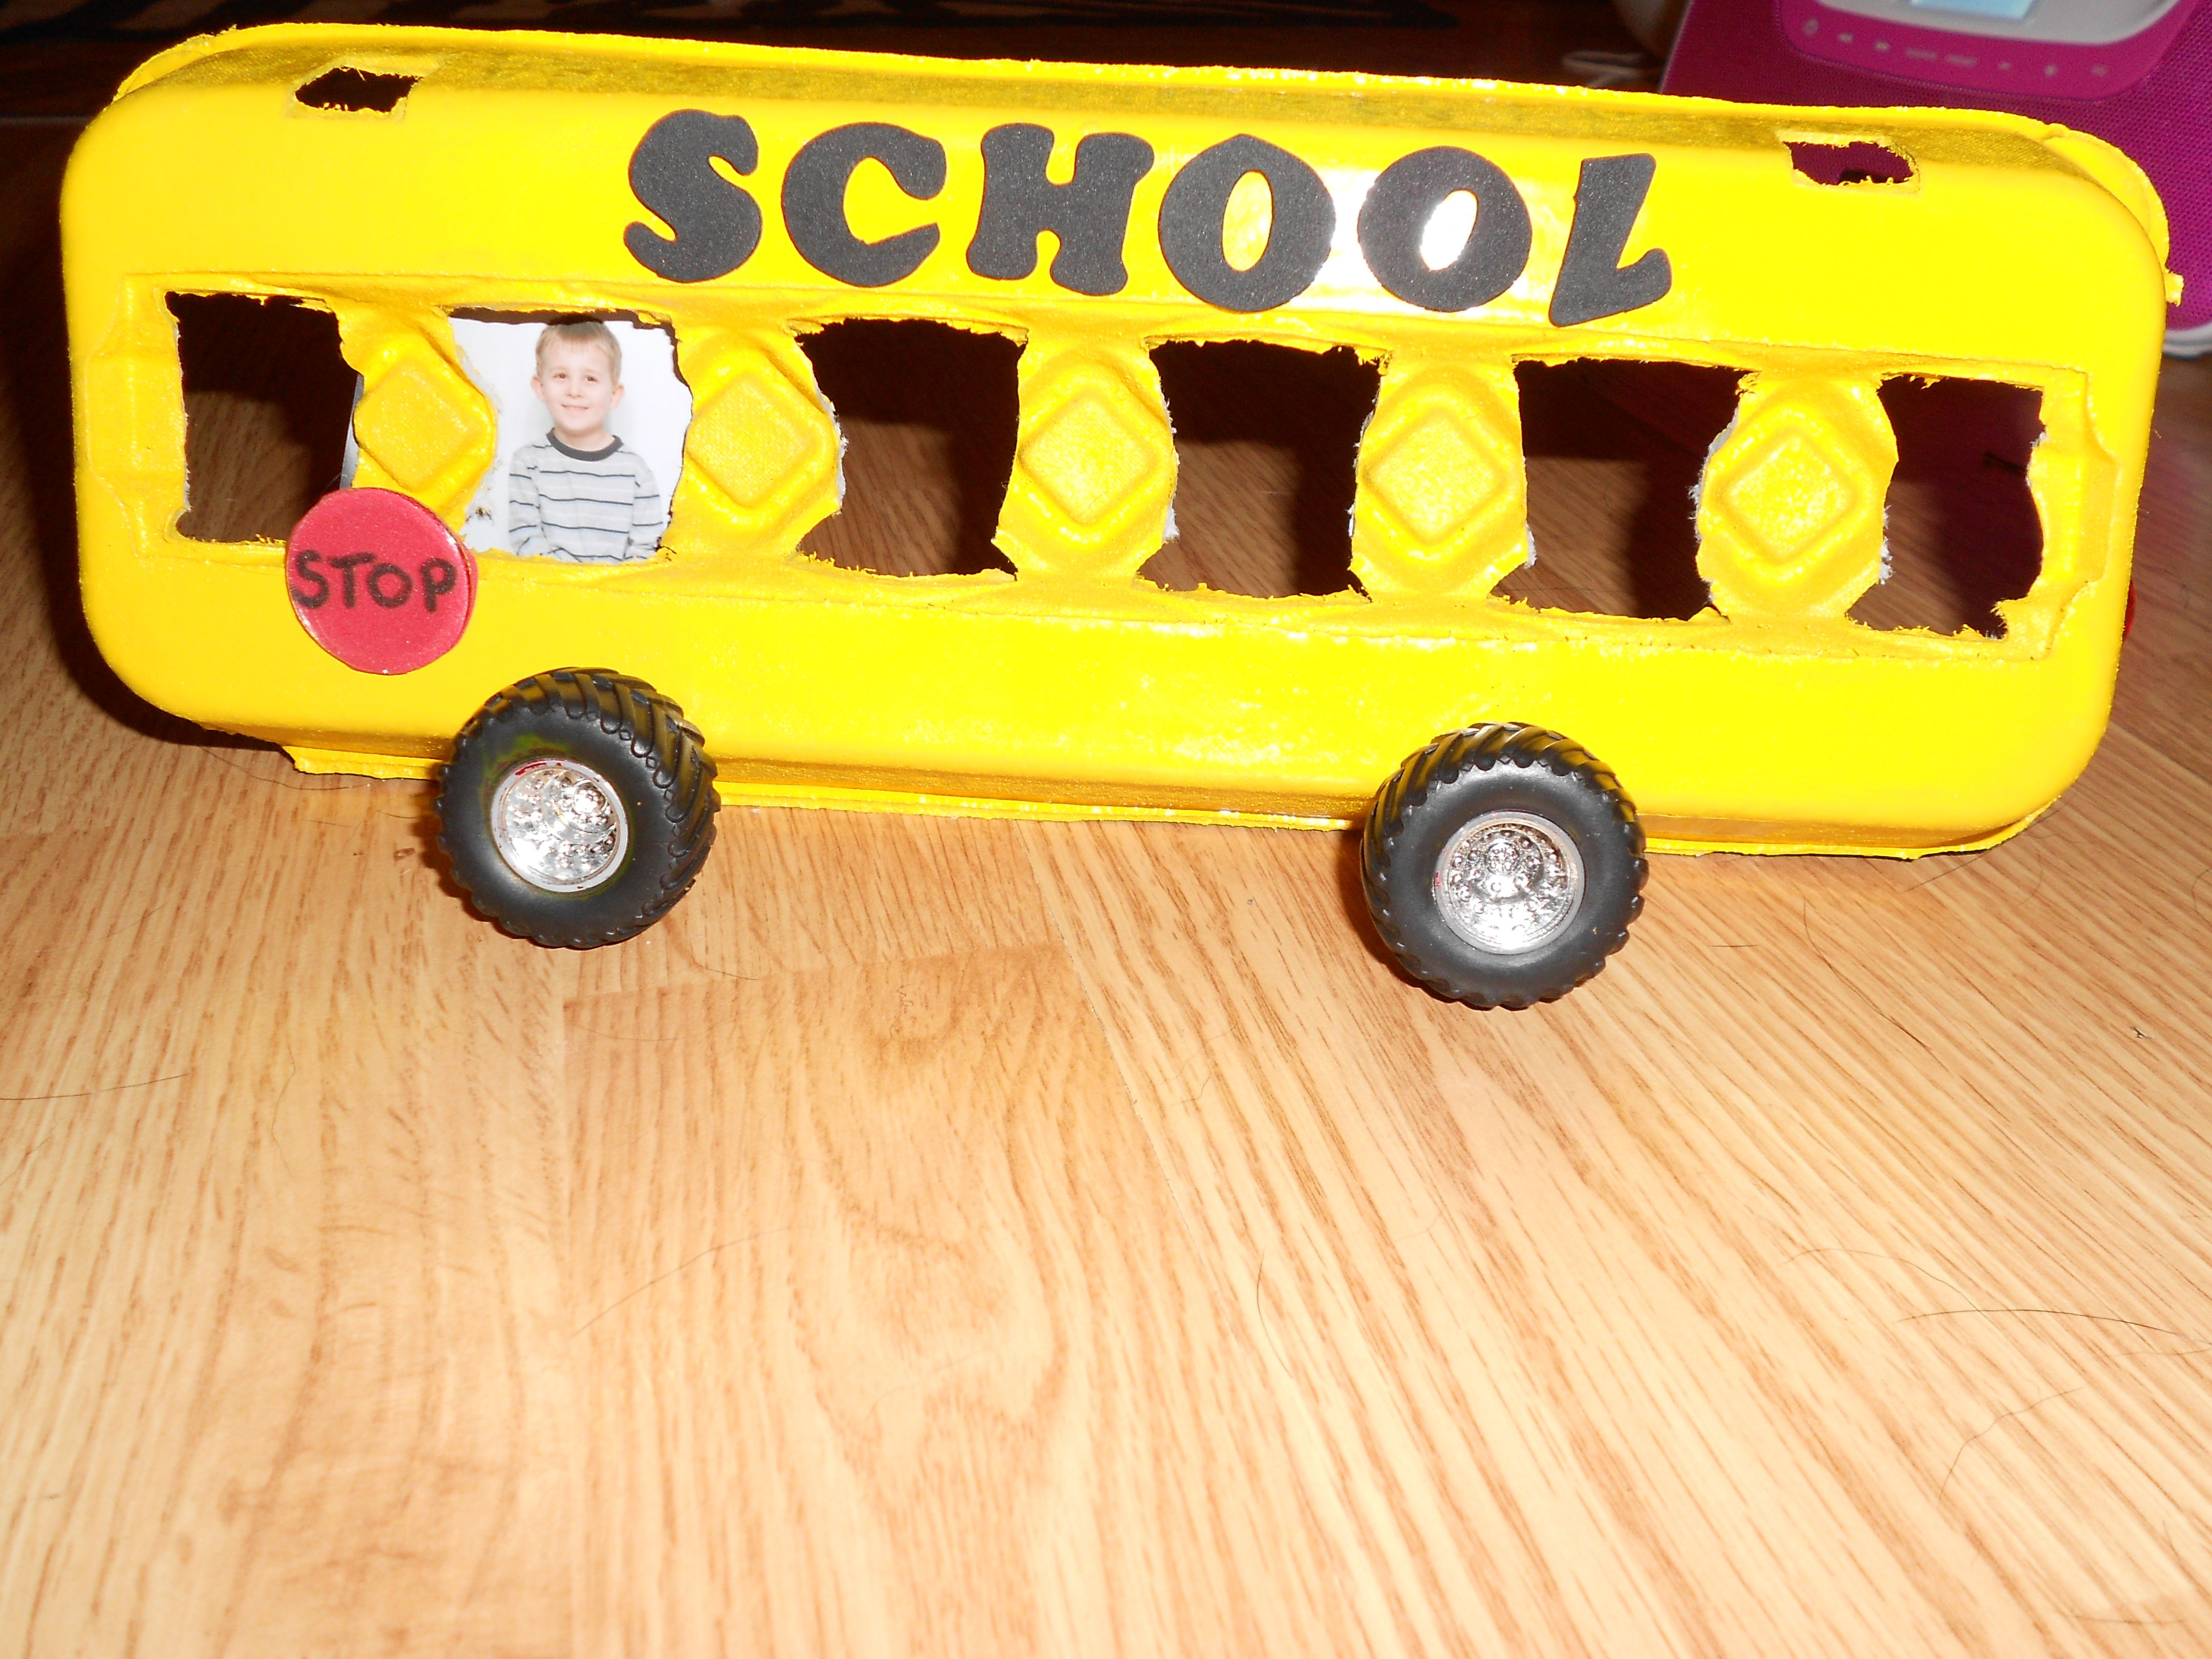 Diy School Bus Picture Frame Use For Turn Taking Moving Bus While